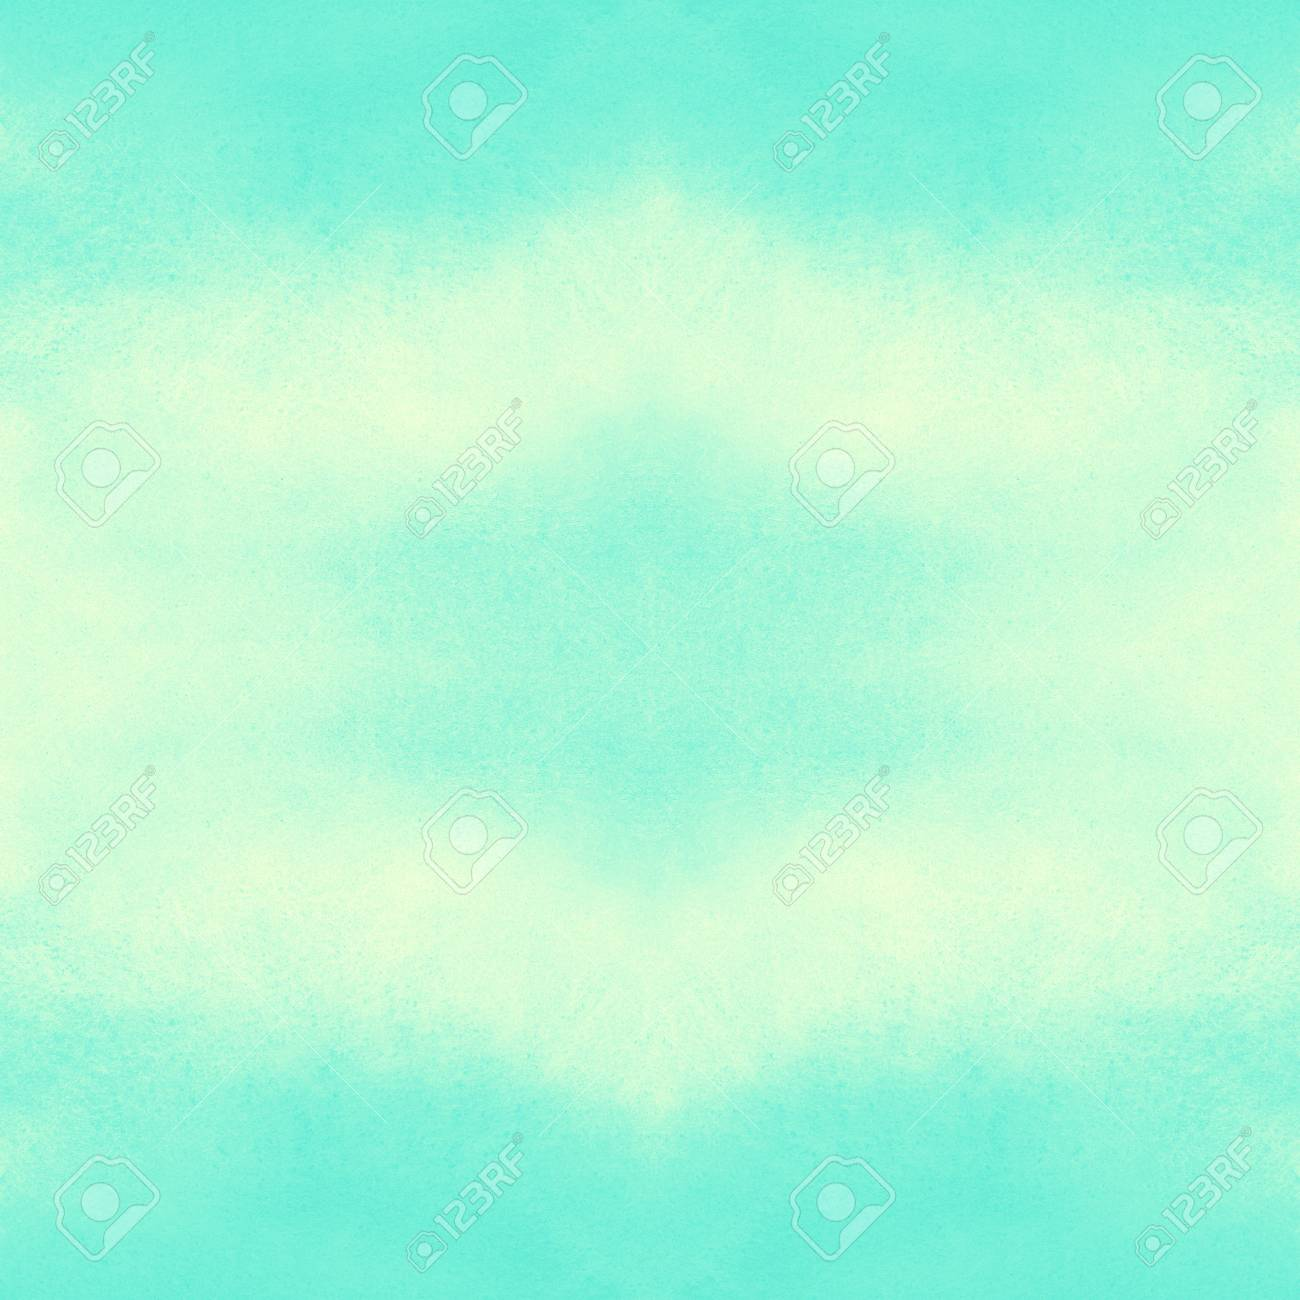 Watercolor Square Abstract Background With Symmetric Gradient